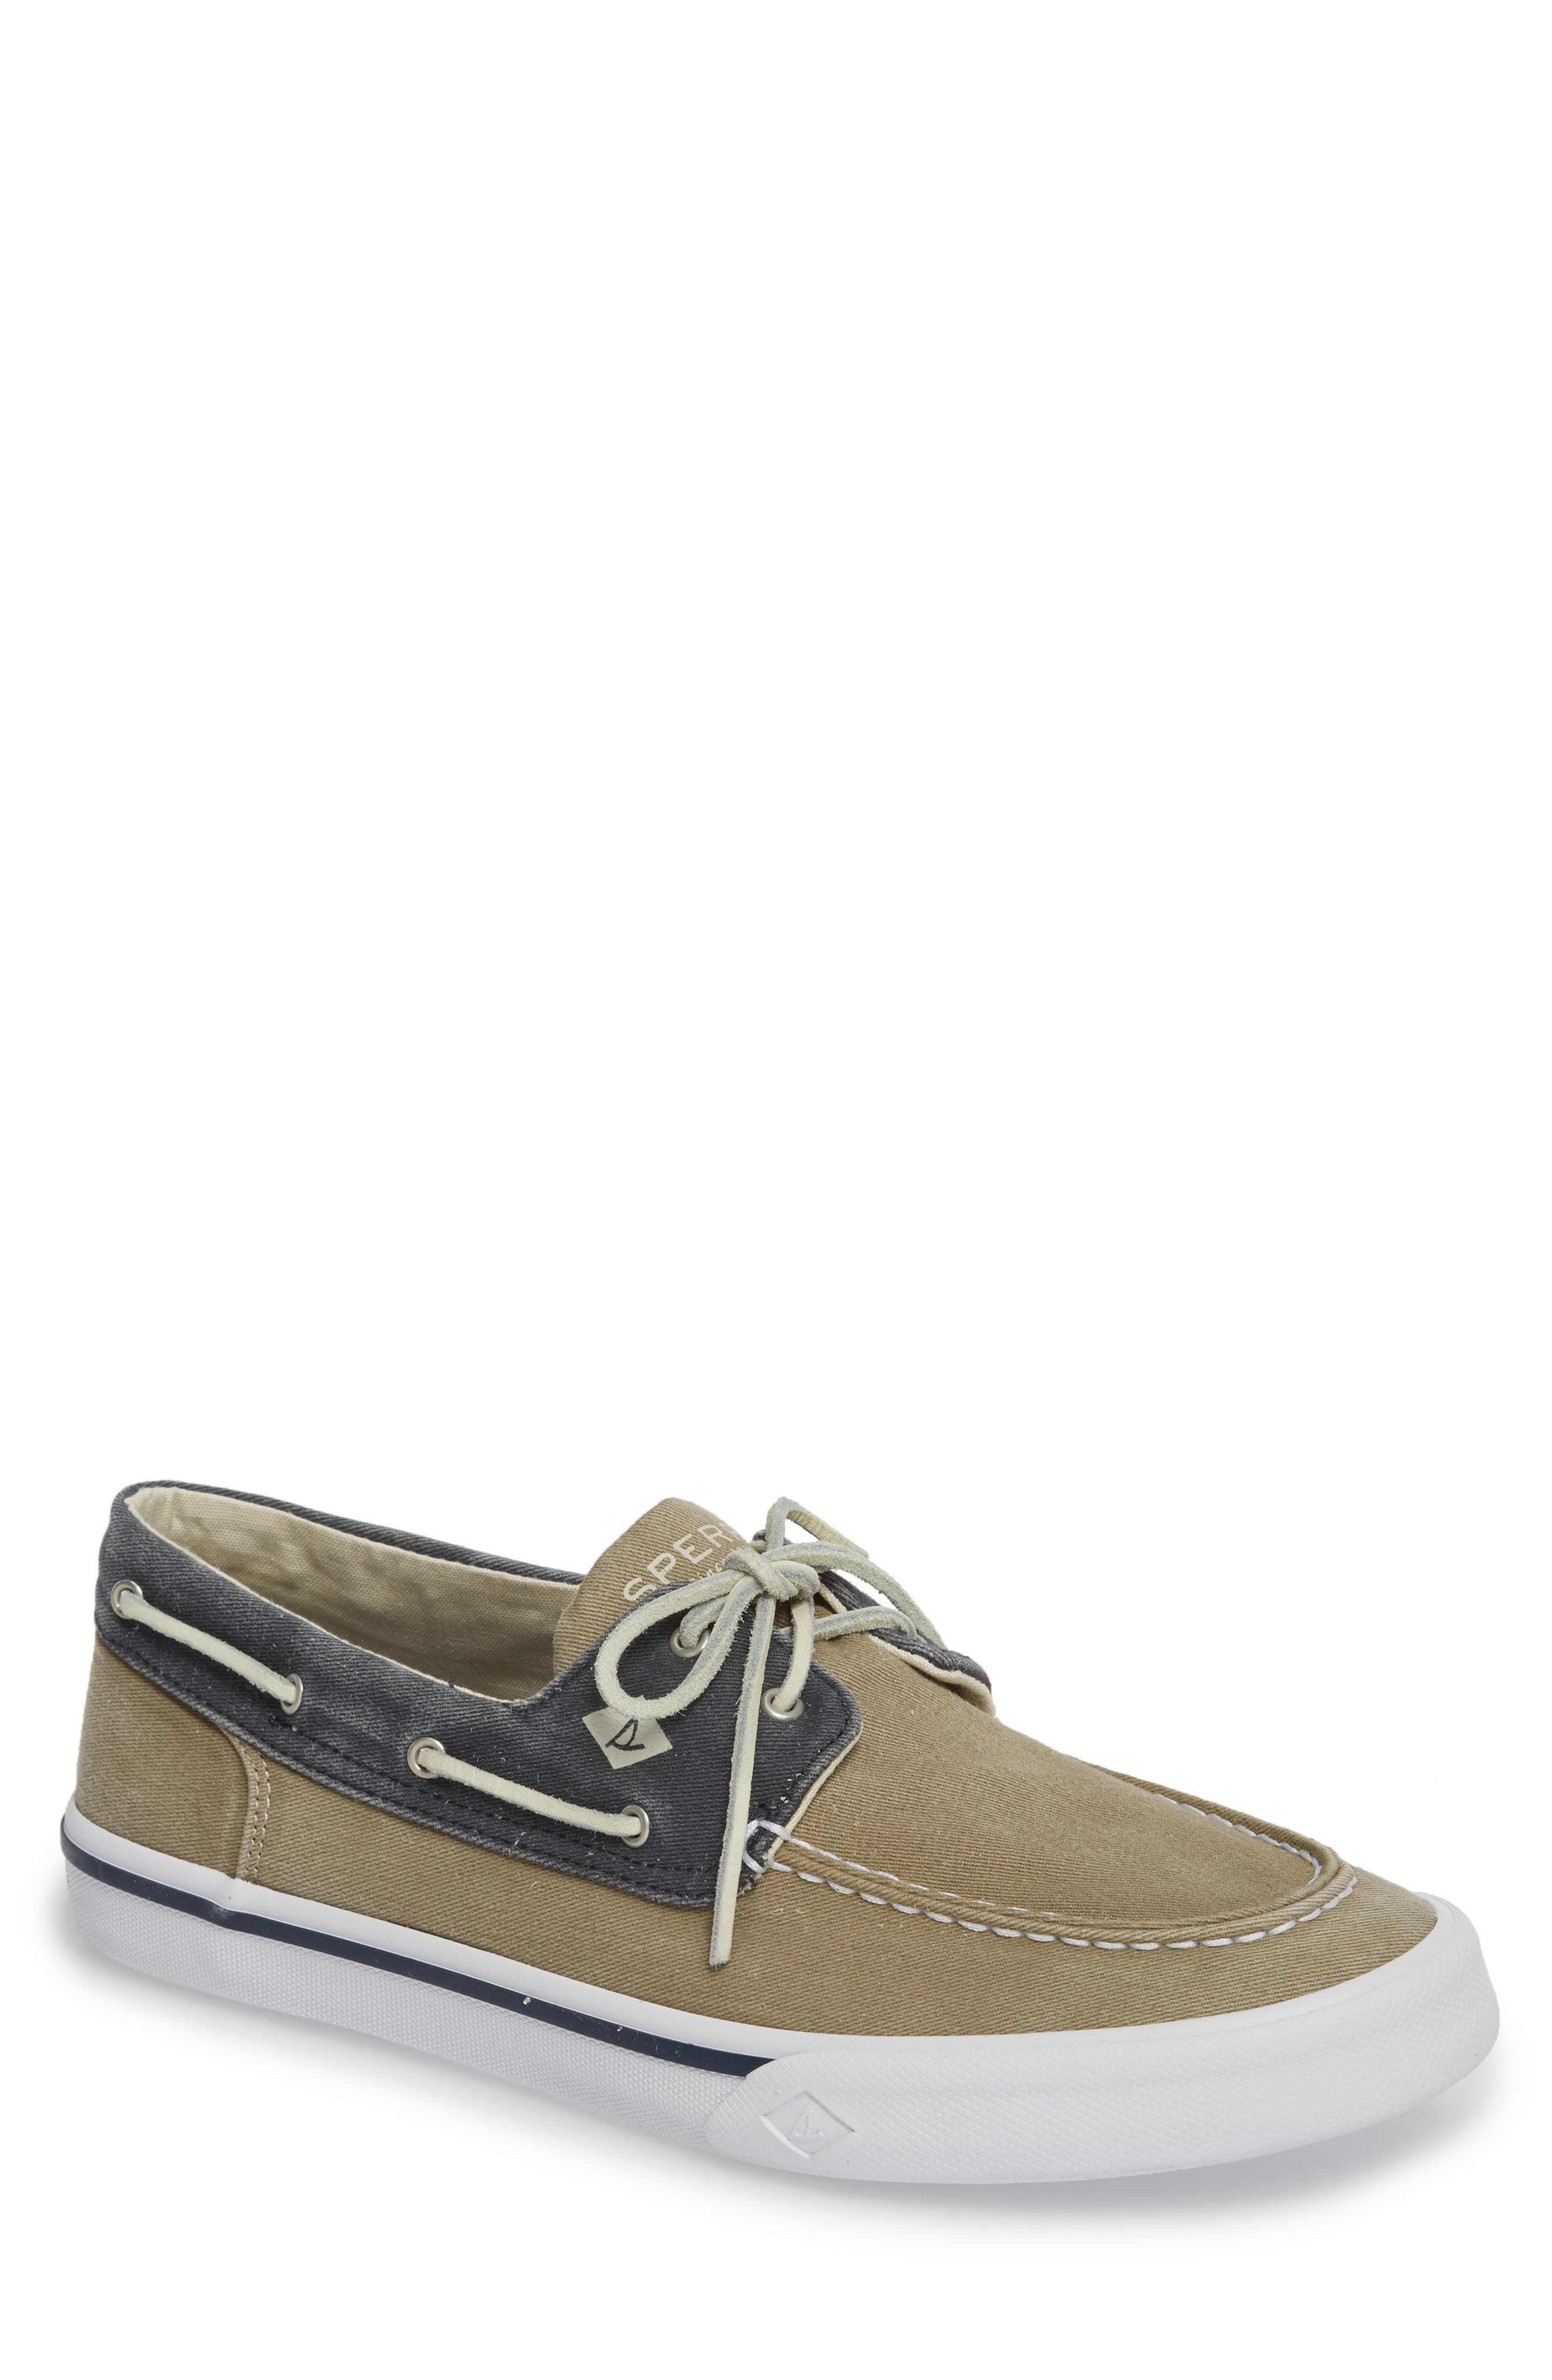 Striper II Boat Shoe,                             Main thumbnail 1, color,                             Taupe/ Navy